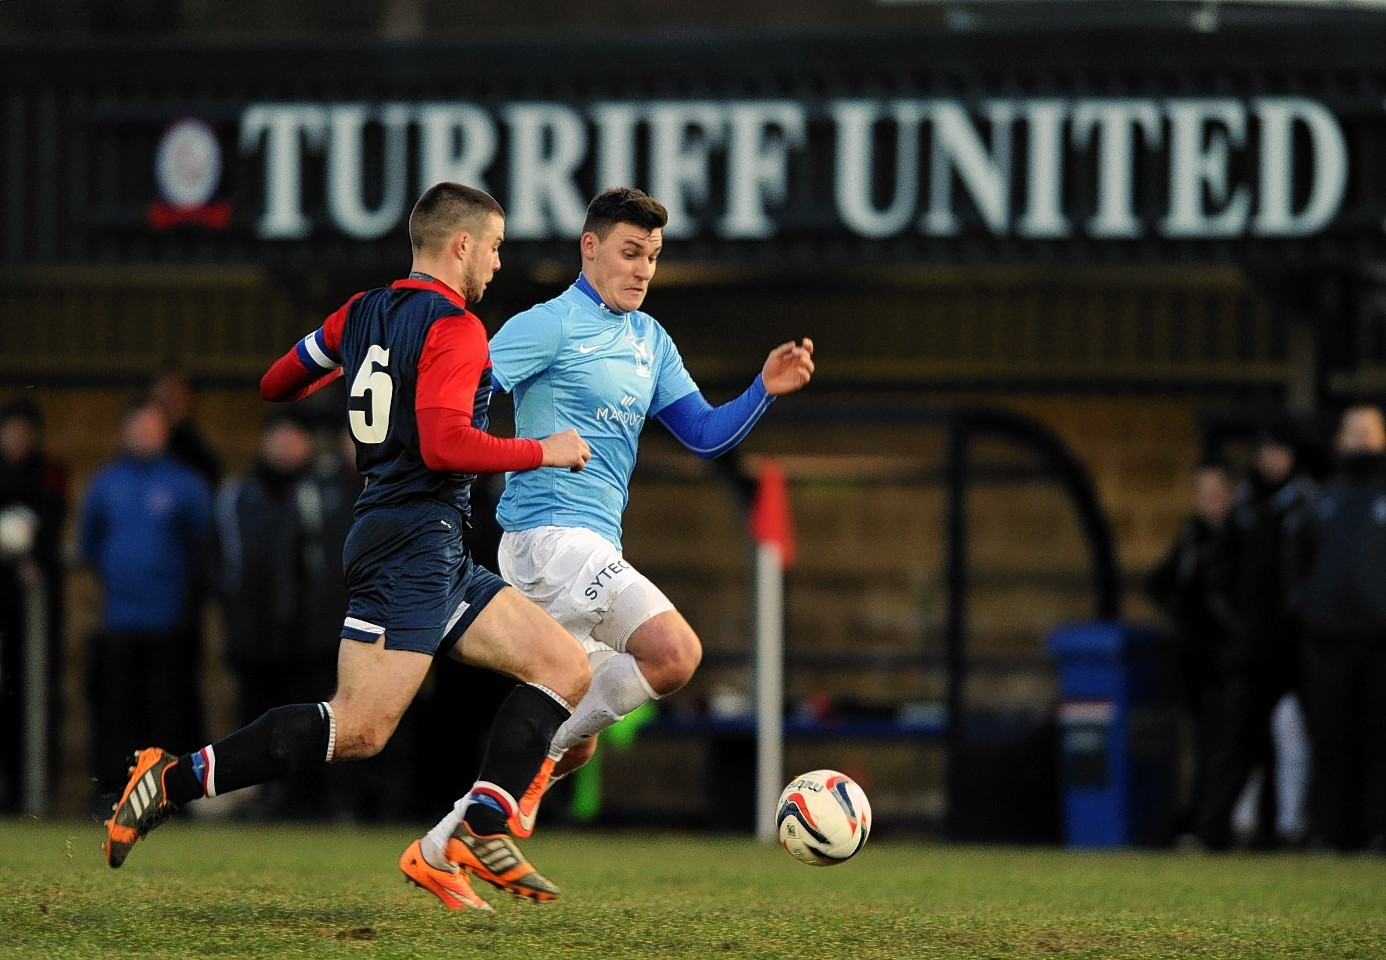 Turriff United moved top of the league with a 1-0 win over Deveronvale